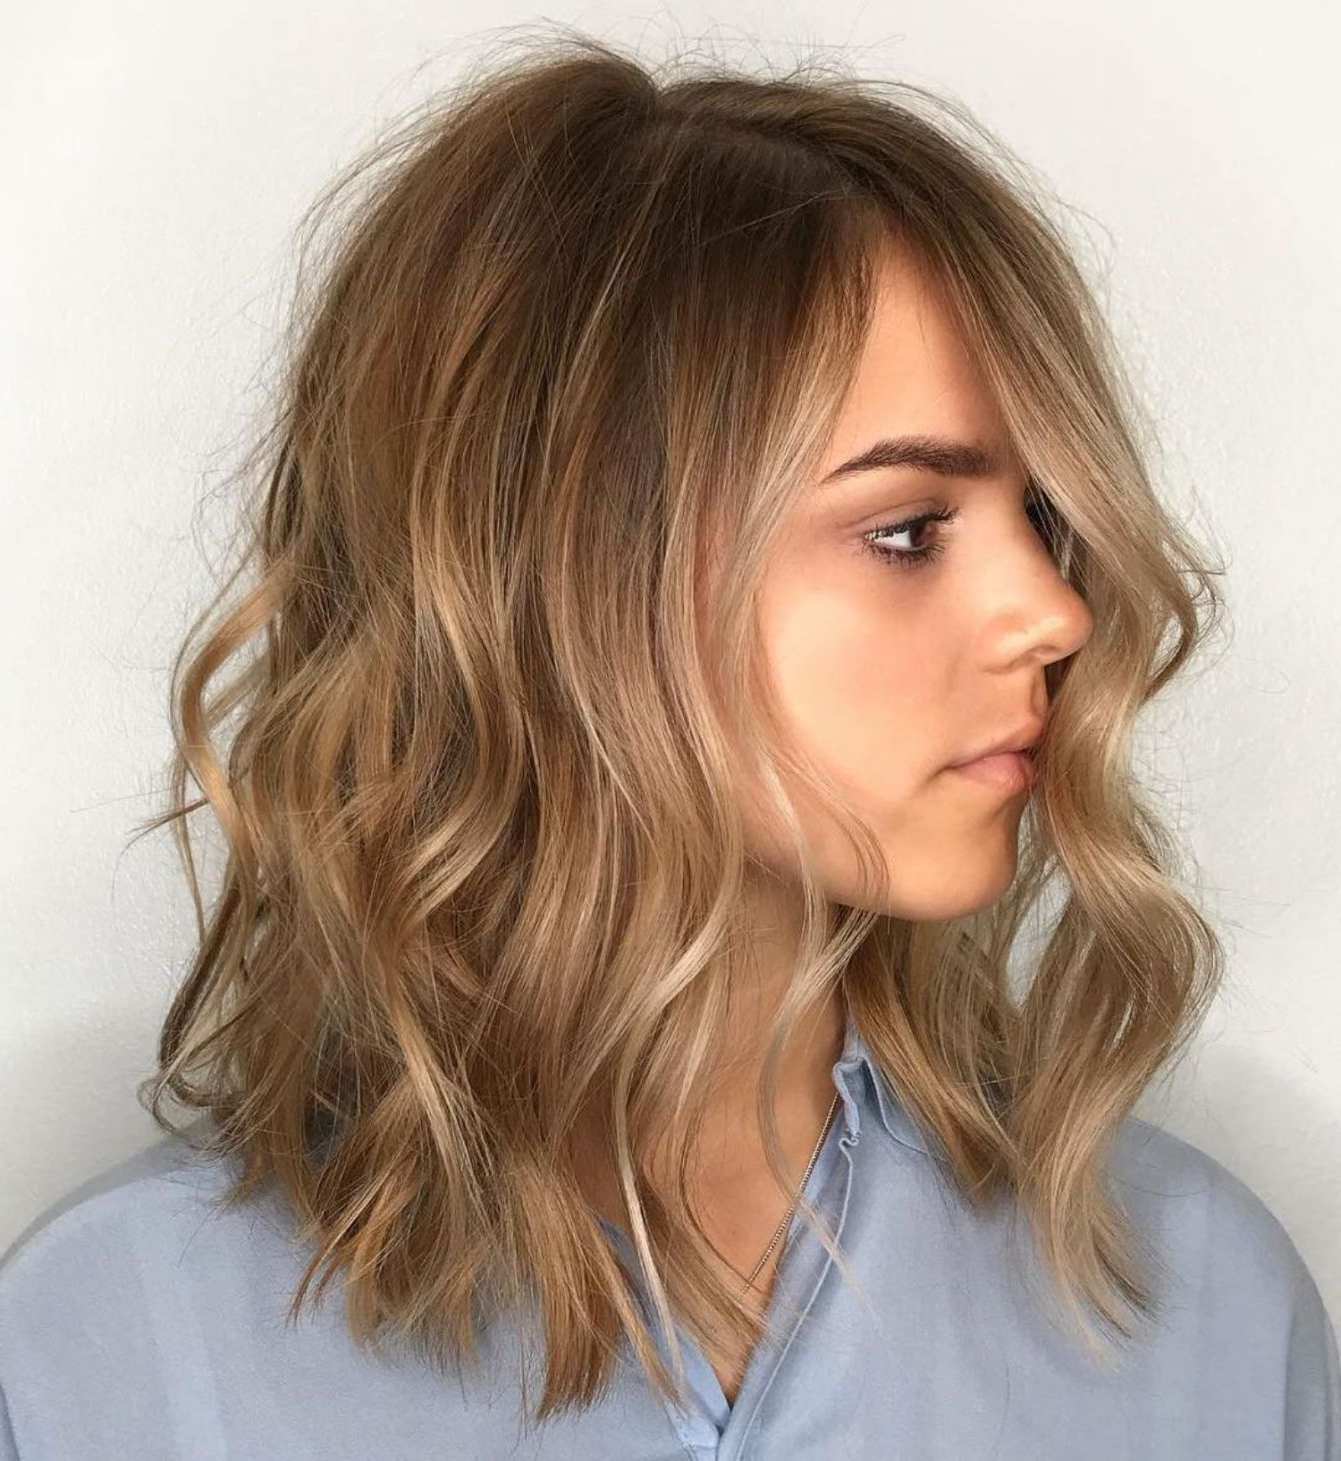 Hair And Beauty With Latest Messy Layered Haircuts For Fine Hair (View 7 of 20)